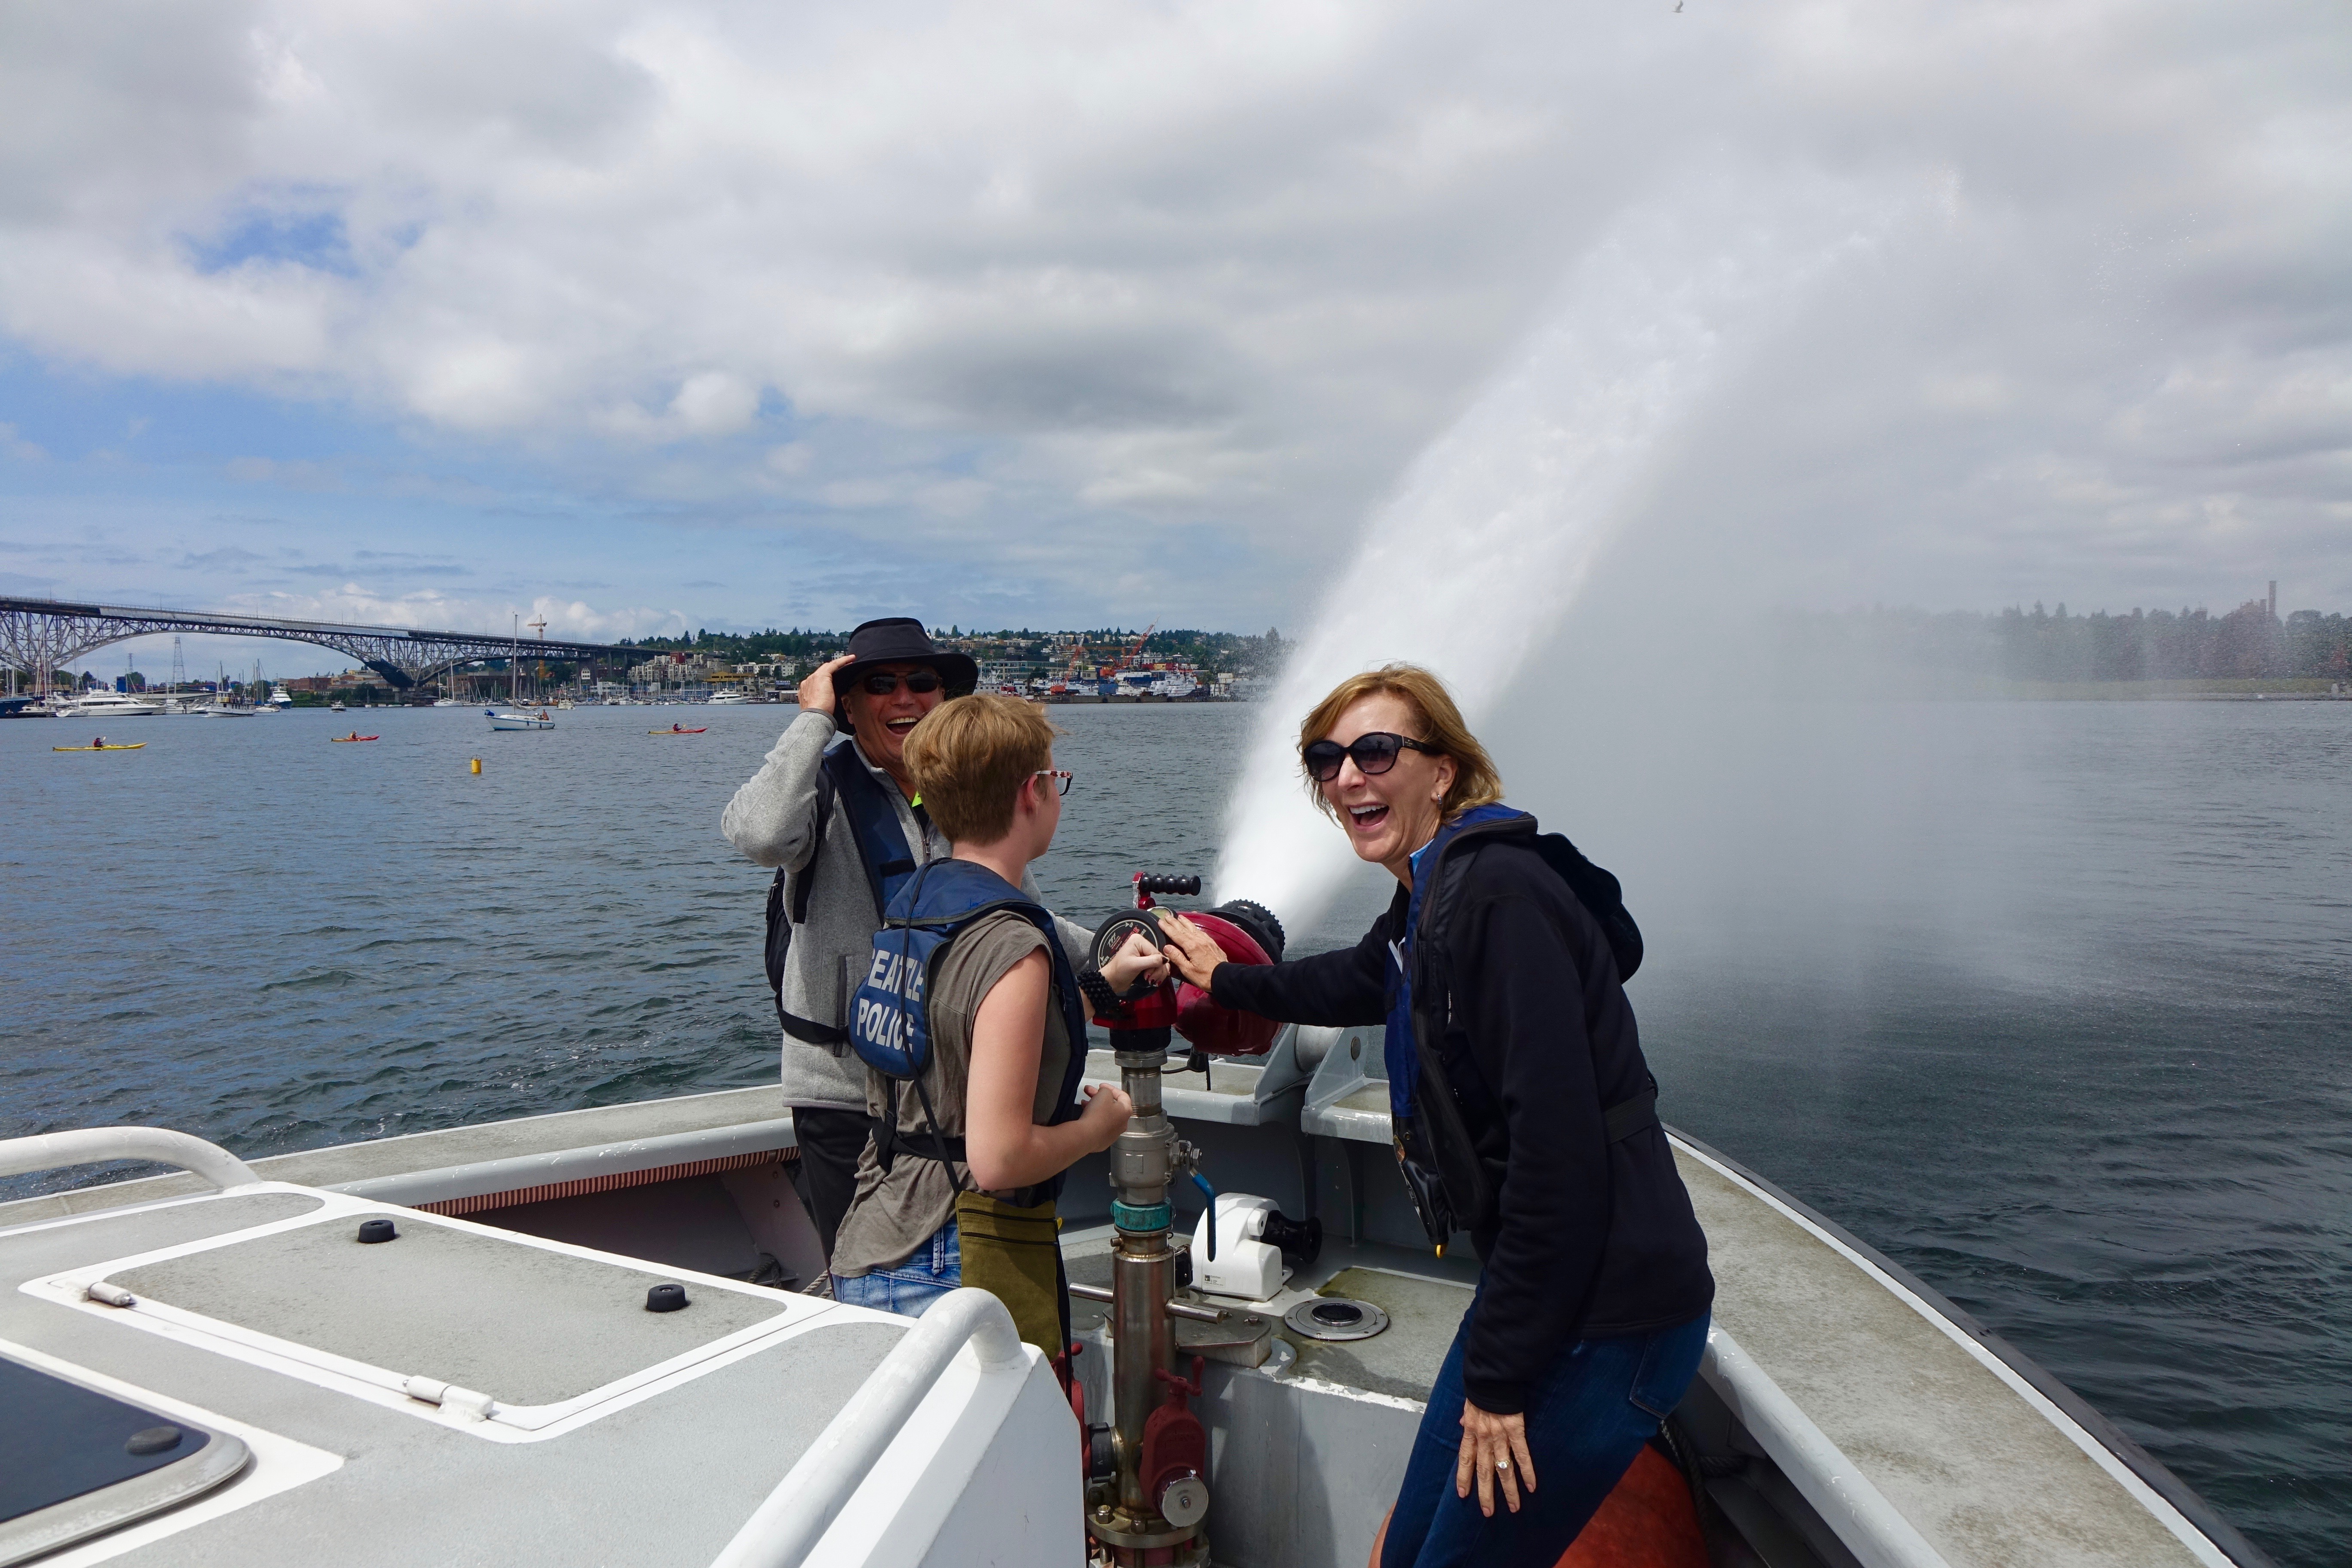 Their water hoses pump directly out of Lake Union.